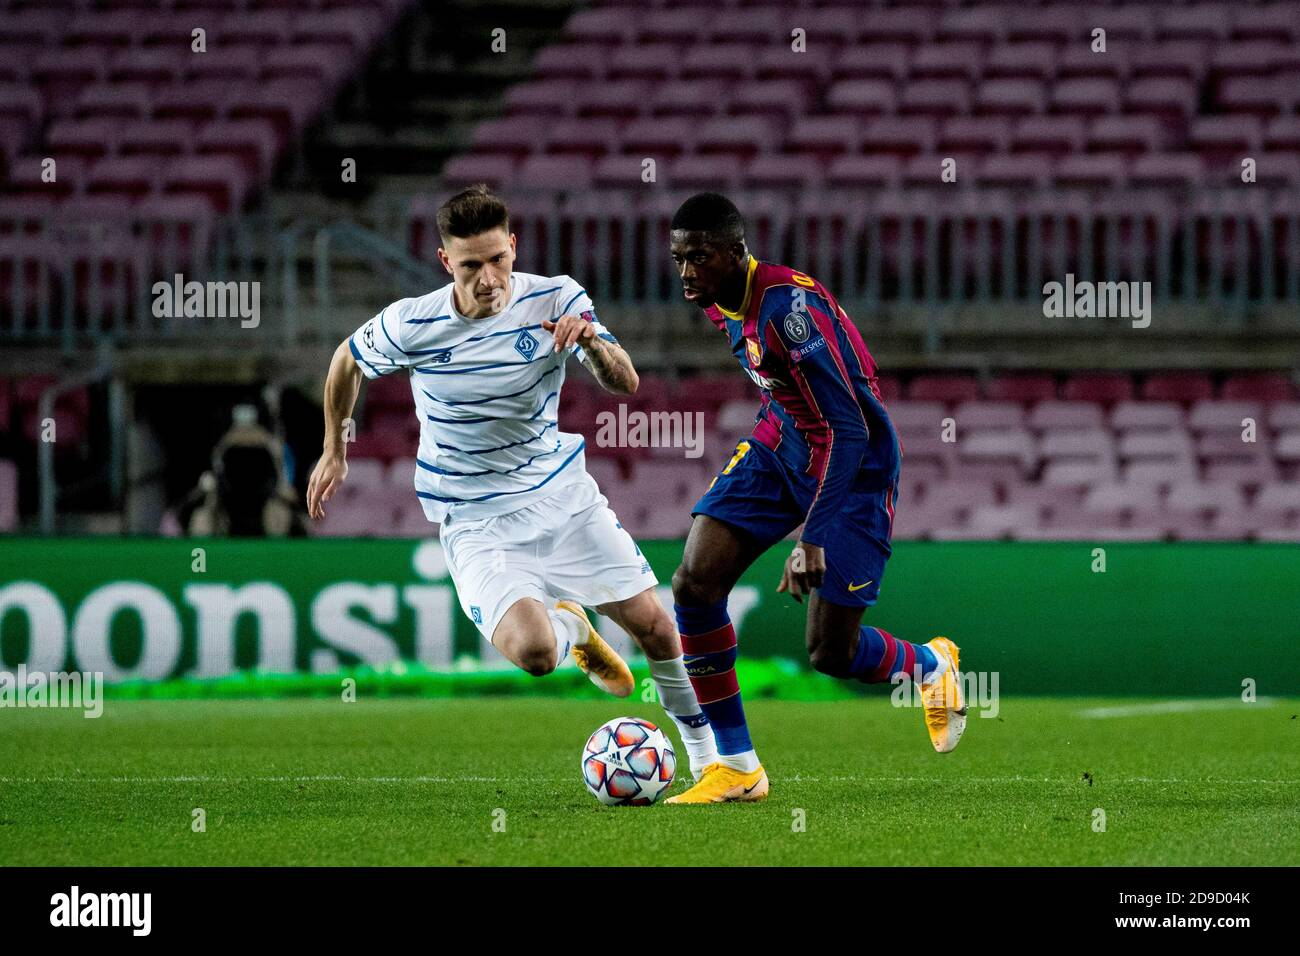 barcelona spain 4th nov 2020 barcelona s ansu fati r vies with kyiv s benjamin verbic during the alamy